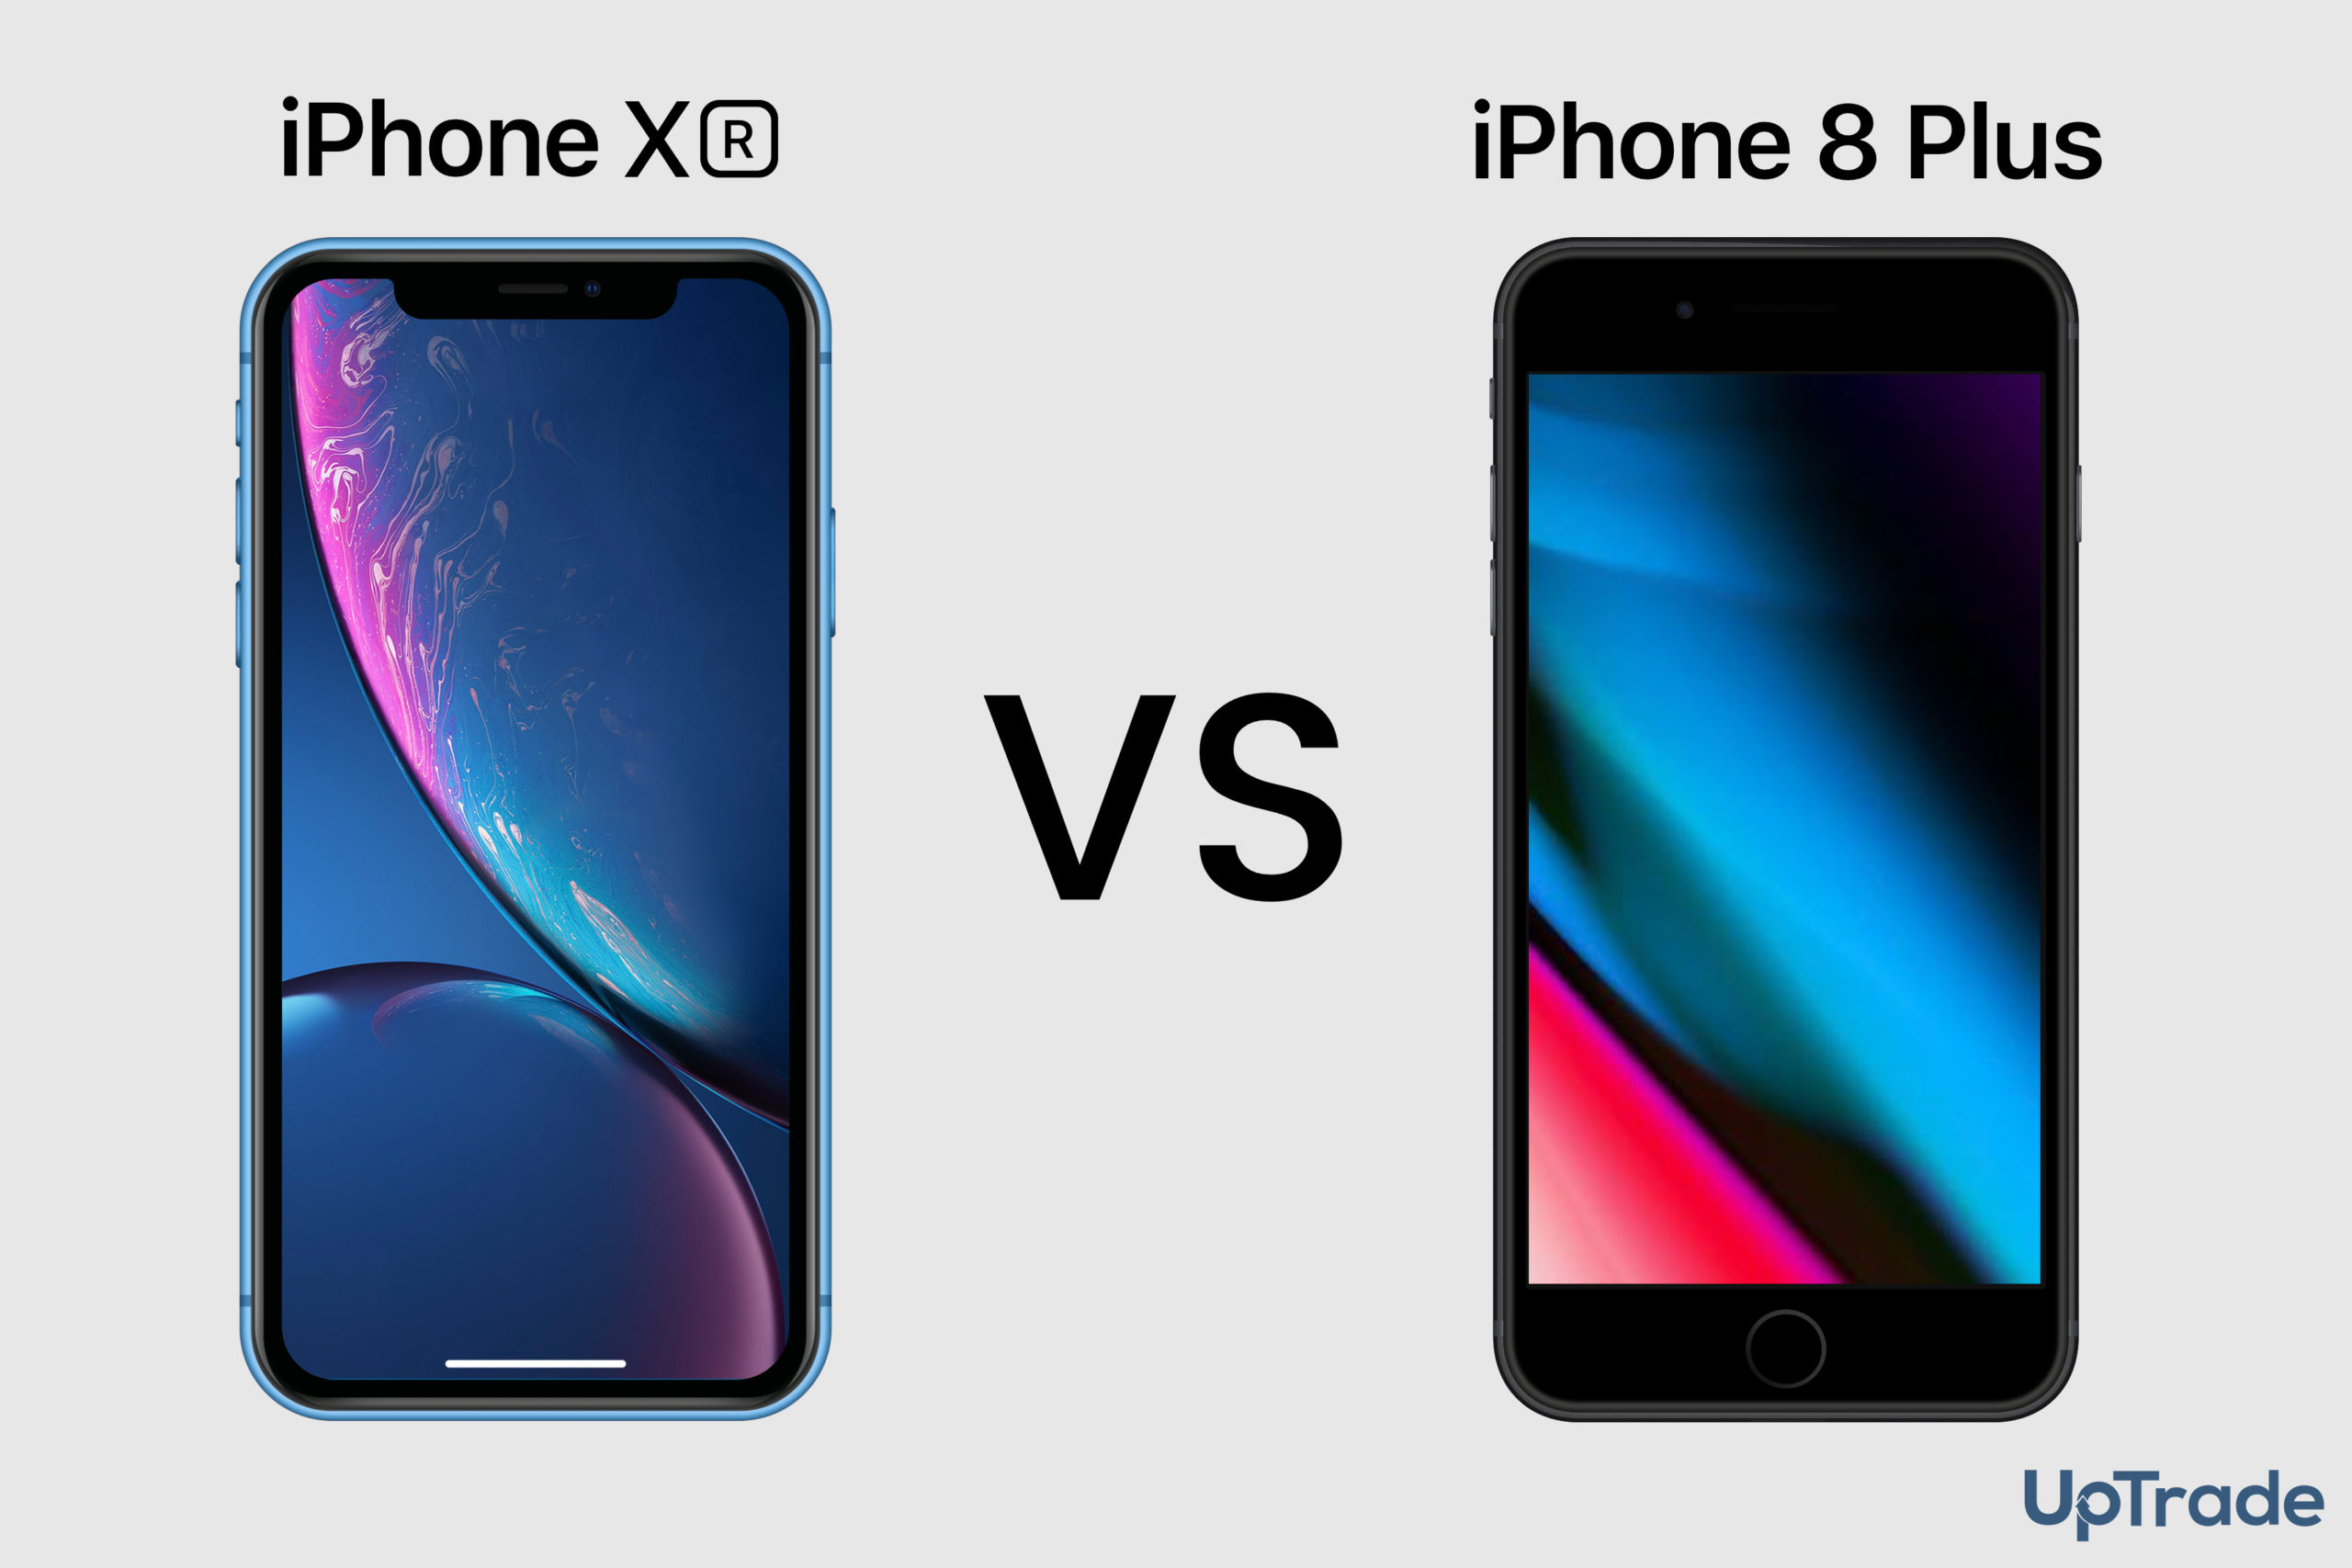 iPhone XR vs iPhone 8 Plus